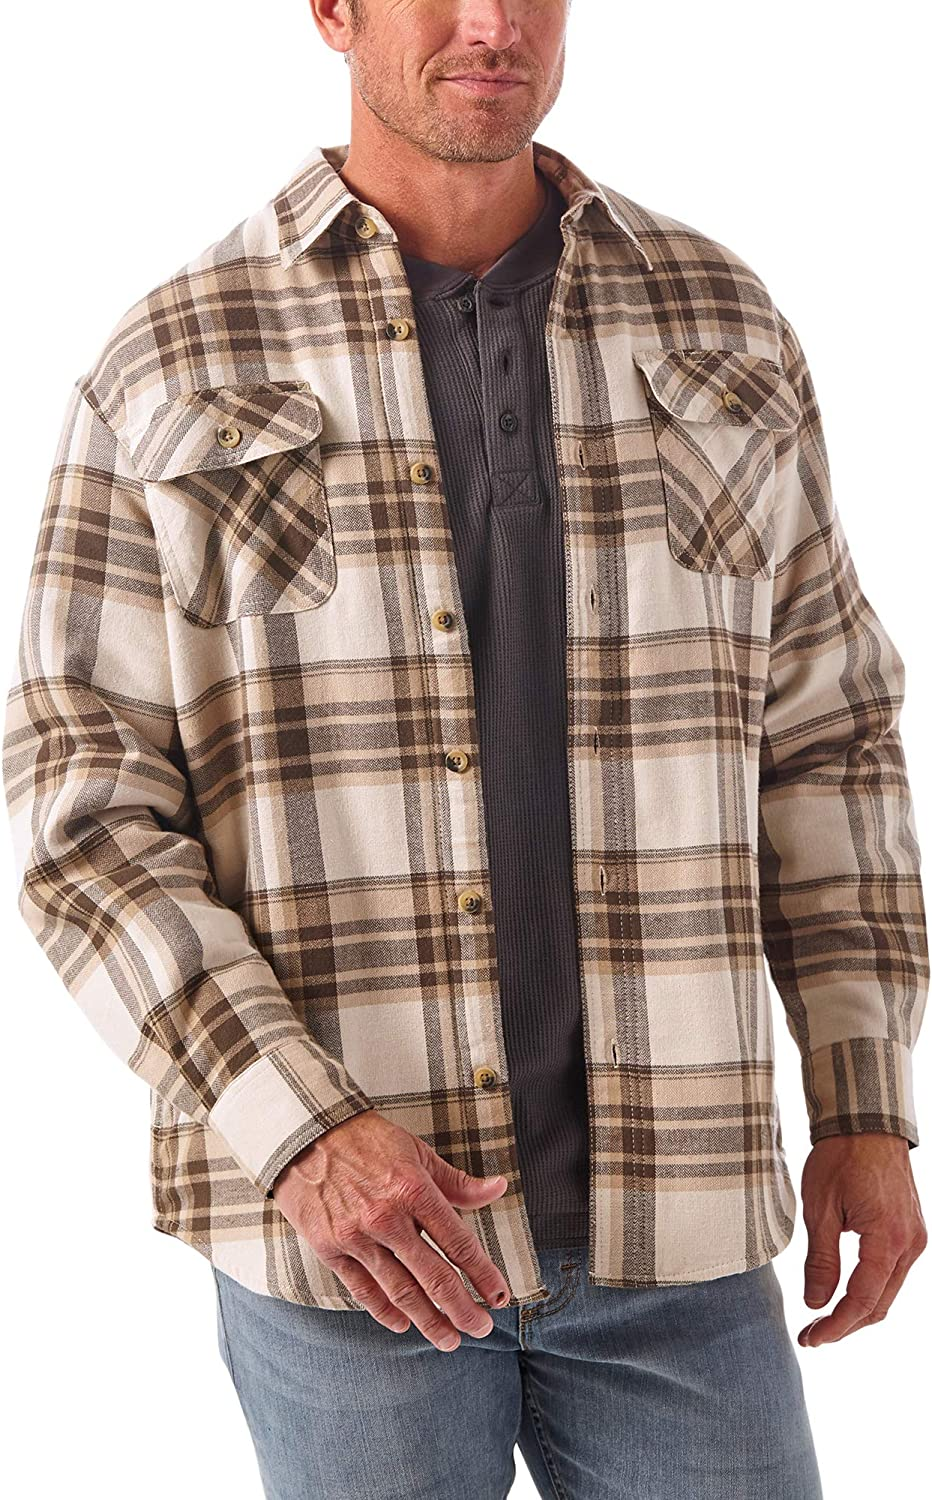 Wrangler Authentics Men's Long Sleeve Sherpa Lined Shirt Jacket at  Men's Clothing store